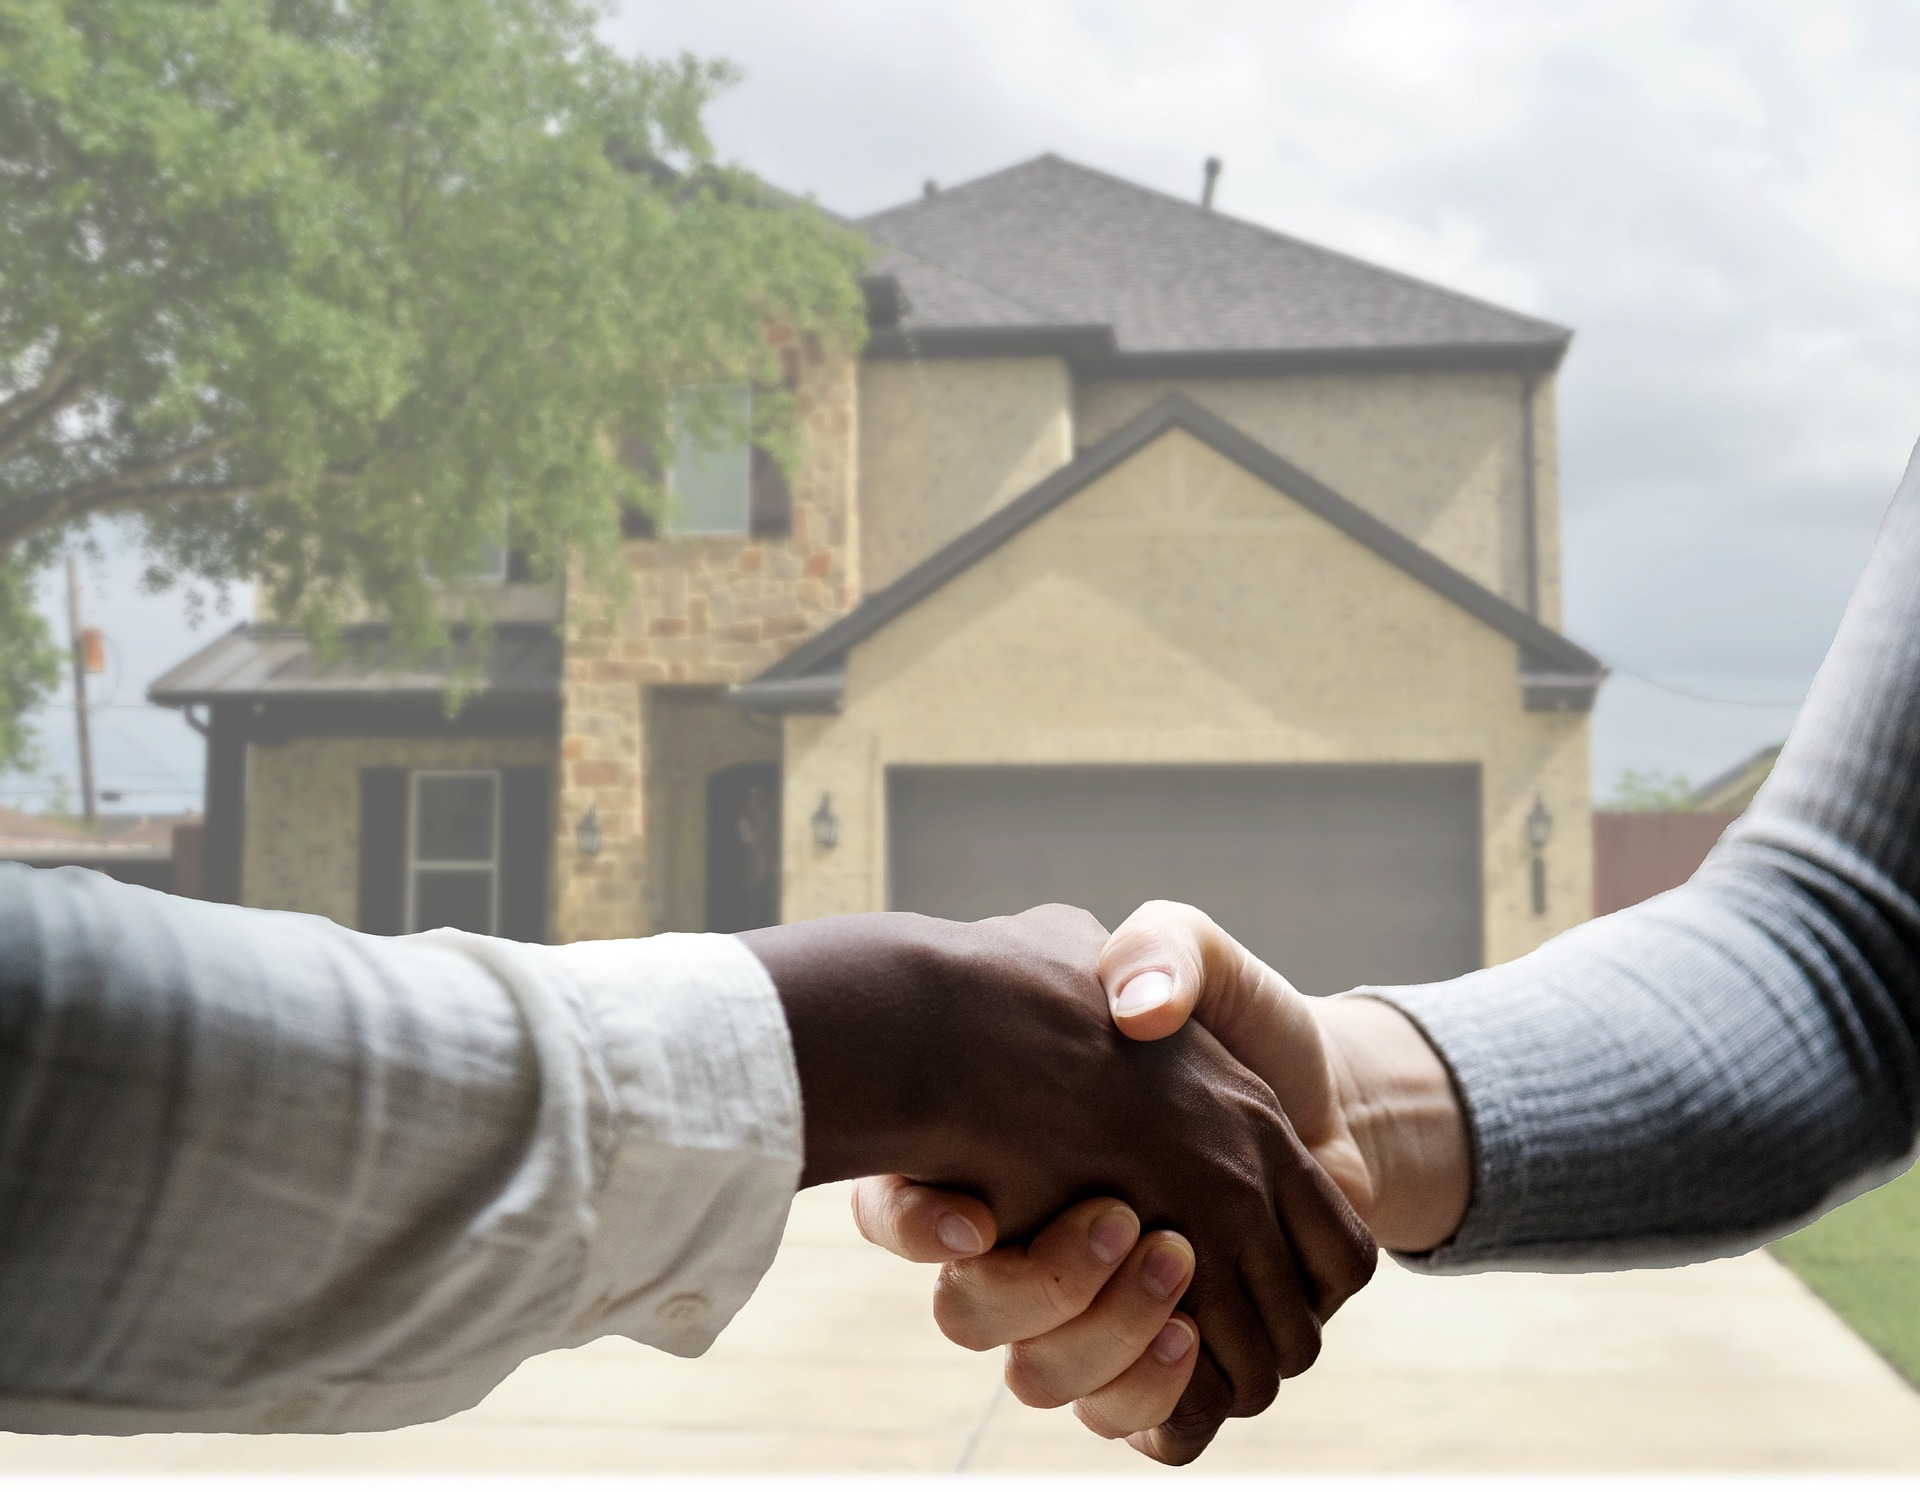 two people shaking hands in front of a home